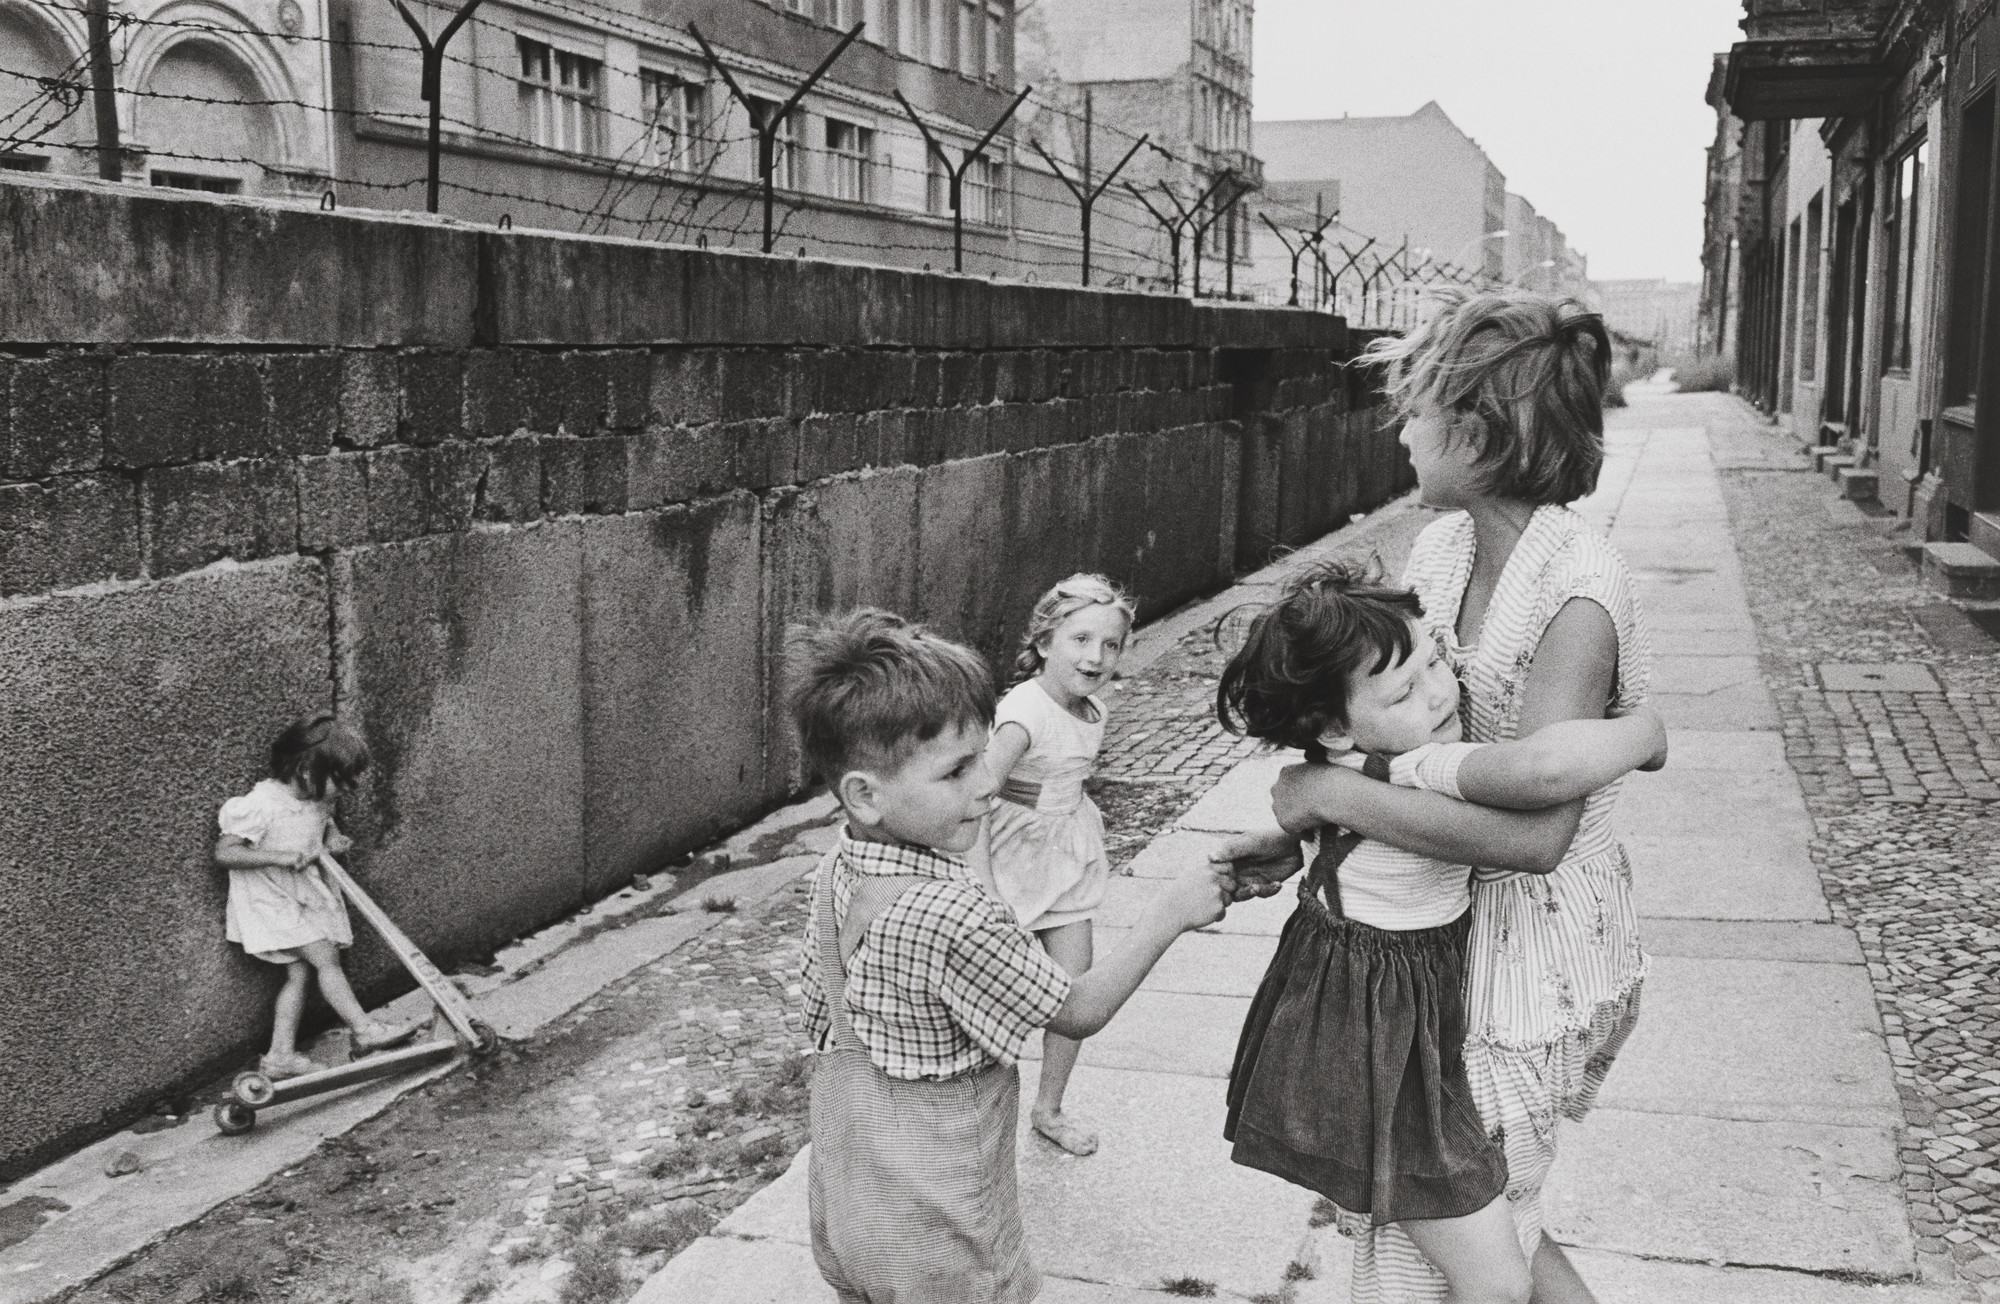 Henri Cartier-Bresson. Berlin Wall. 1963 | MoMA